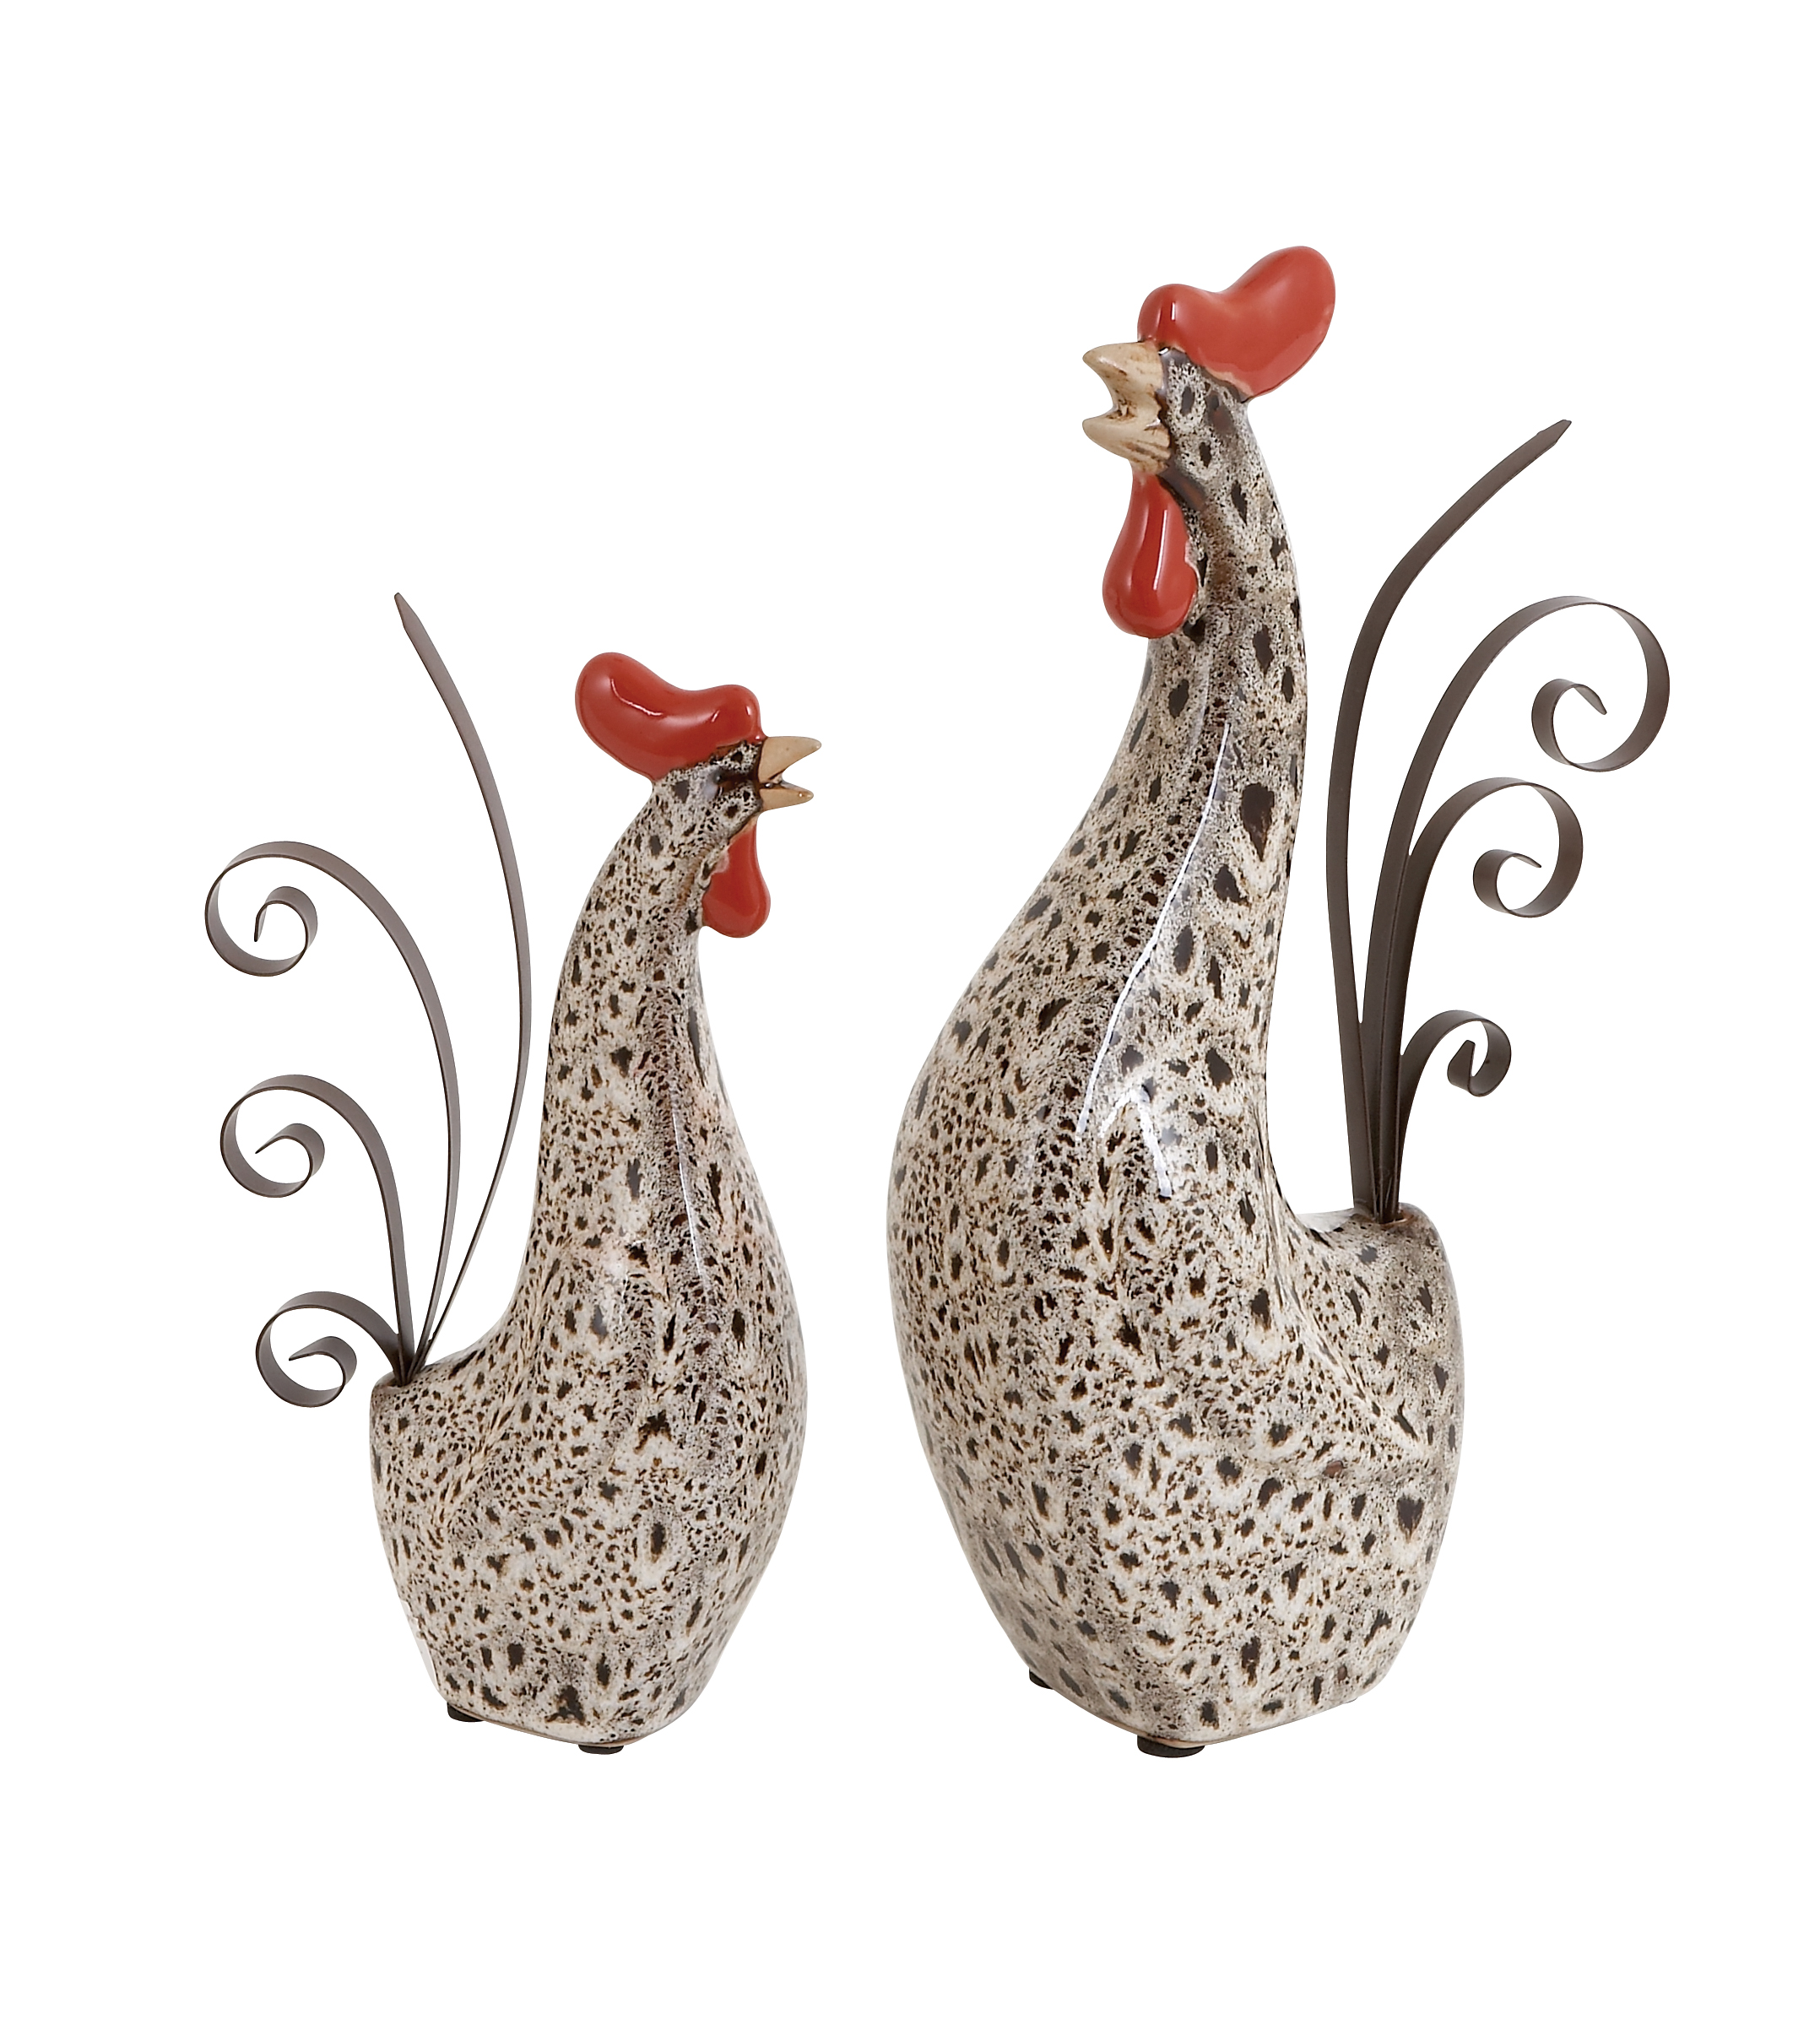 Ceramic Metal Roosters Spotted Black Pattern Head Tail Set of 2 Décor 40841